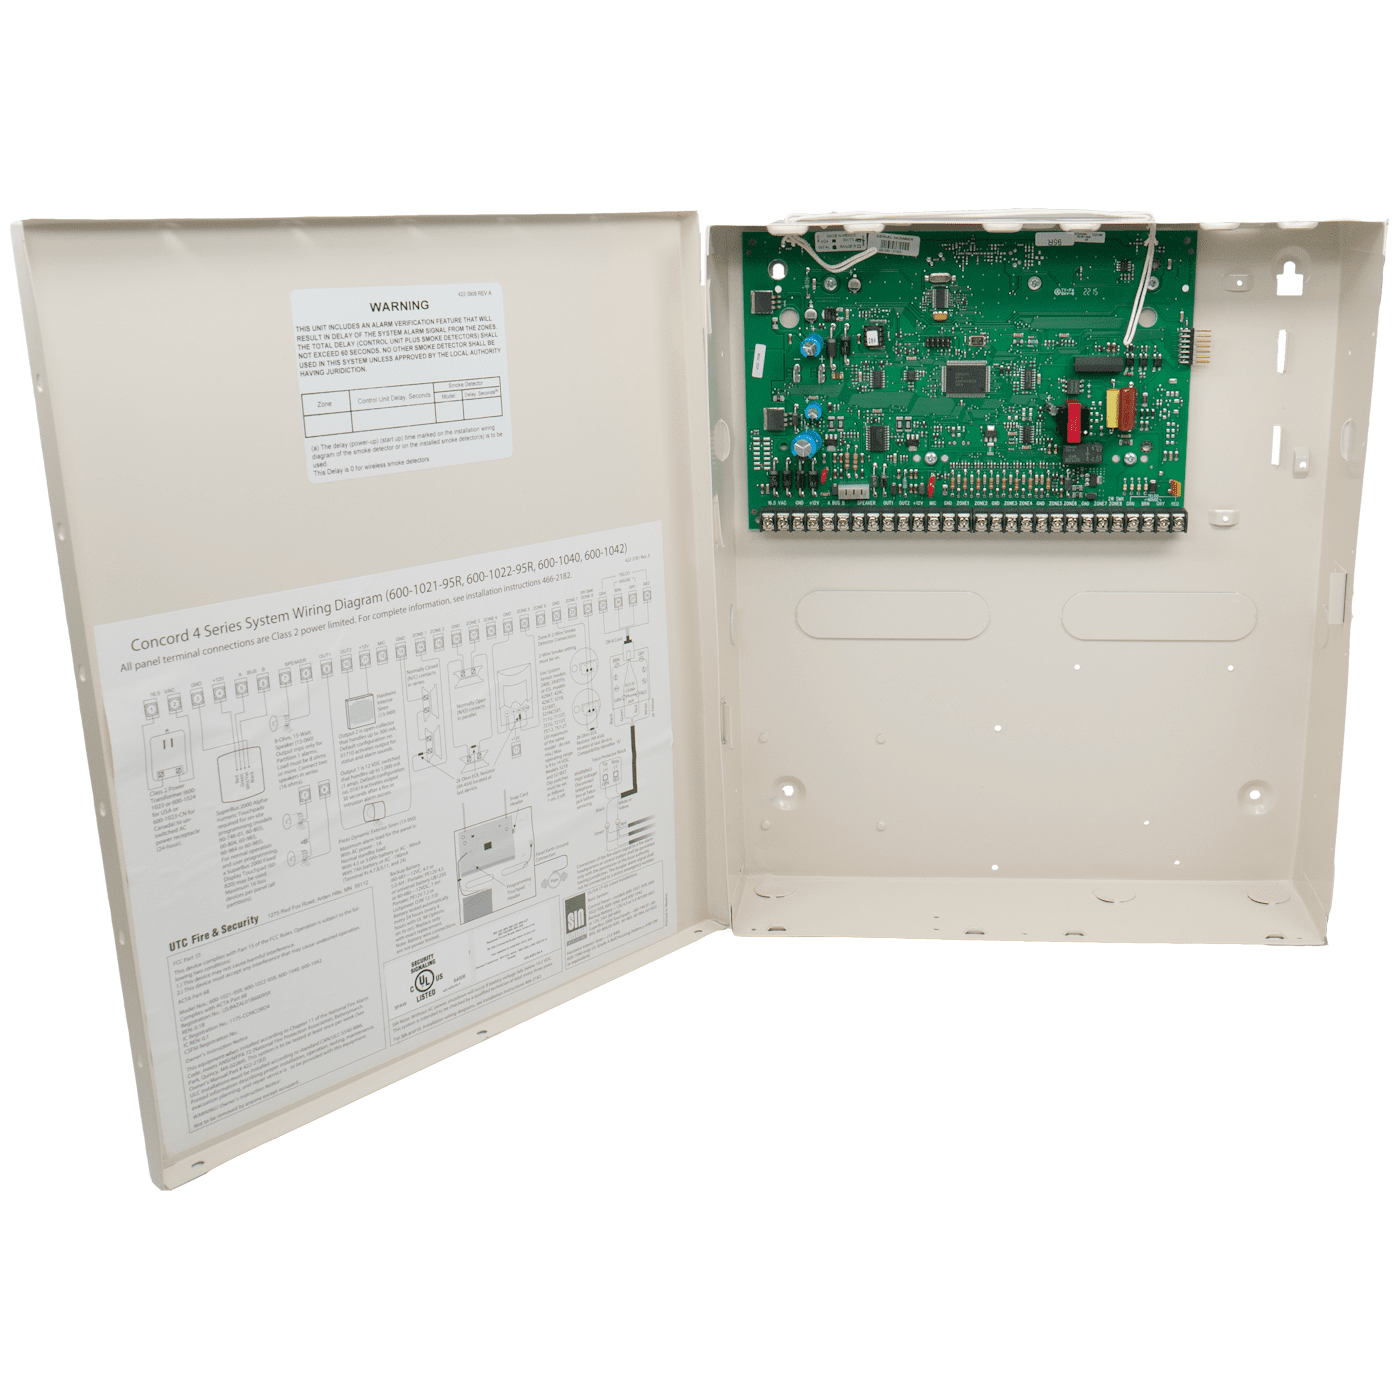 600-1021-95R - Interlogix Concord 4 Alarm Control Panel on ge motor diagrams, ge refrigerator diagrams, ge repair diagrams, ge washing machine diagram, ge motor wiring, ge appliances diagrams, ge dishwasher diagram, ge parts diagrams, ge schematic diagrams, ge refrigerator wiring schematic, ge dishwasher wiring schematic, ge dryer diagram,